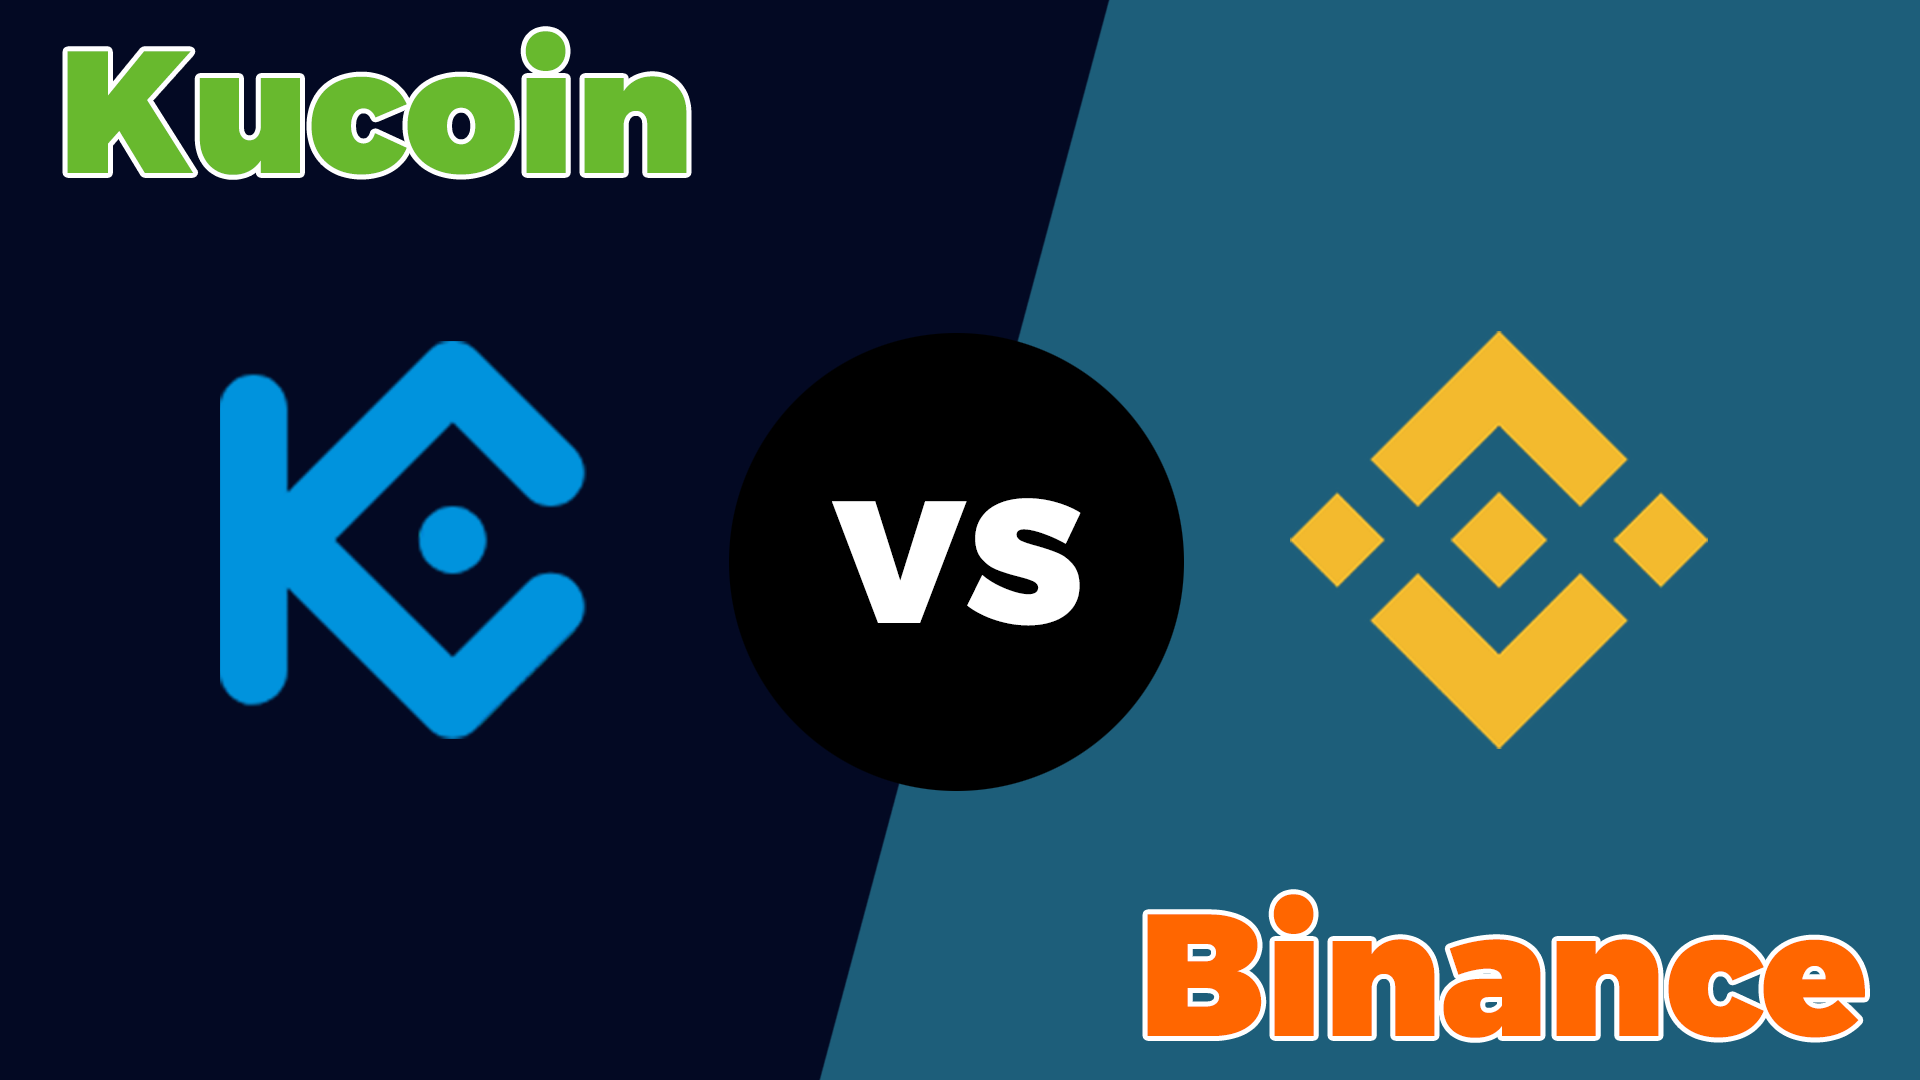 kucoin vs binance - is kucoin better than binance